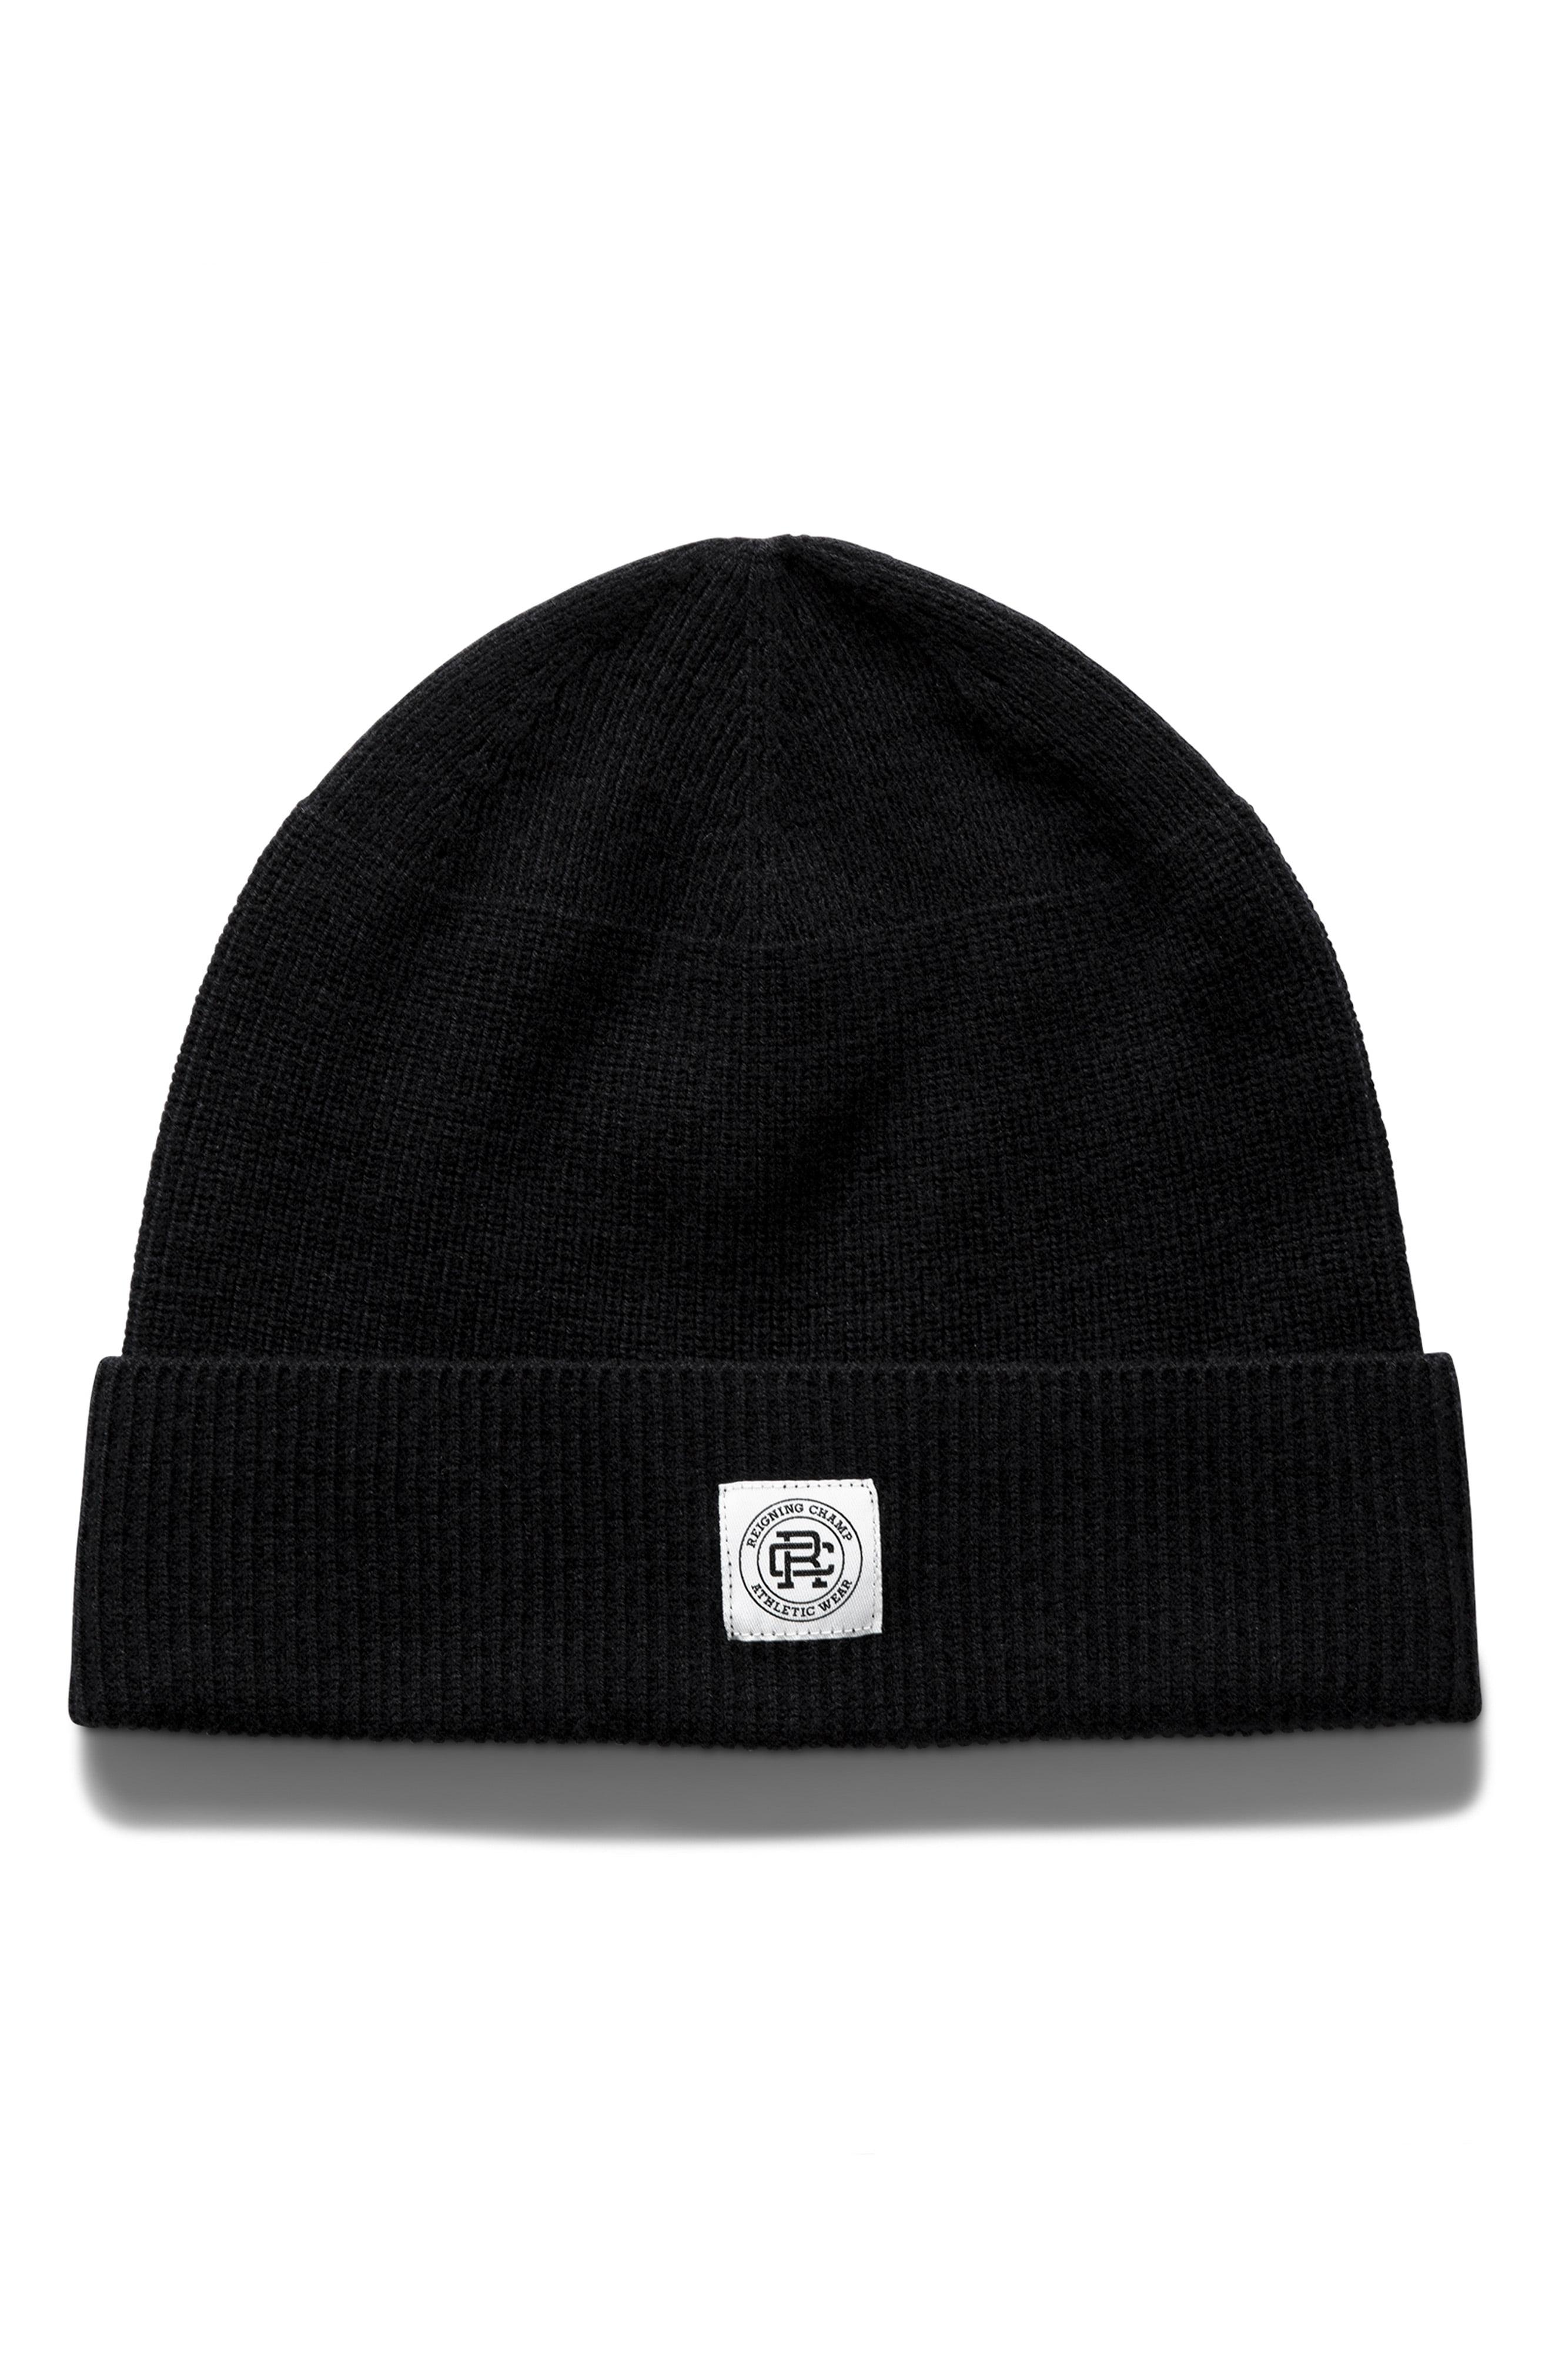 472bf23e4 Lyst - Reigning Champ Merino Wool Beanie in Black for Men - Save 52%